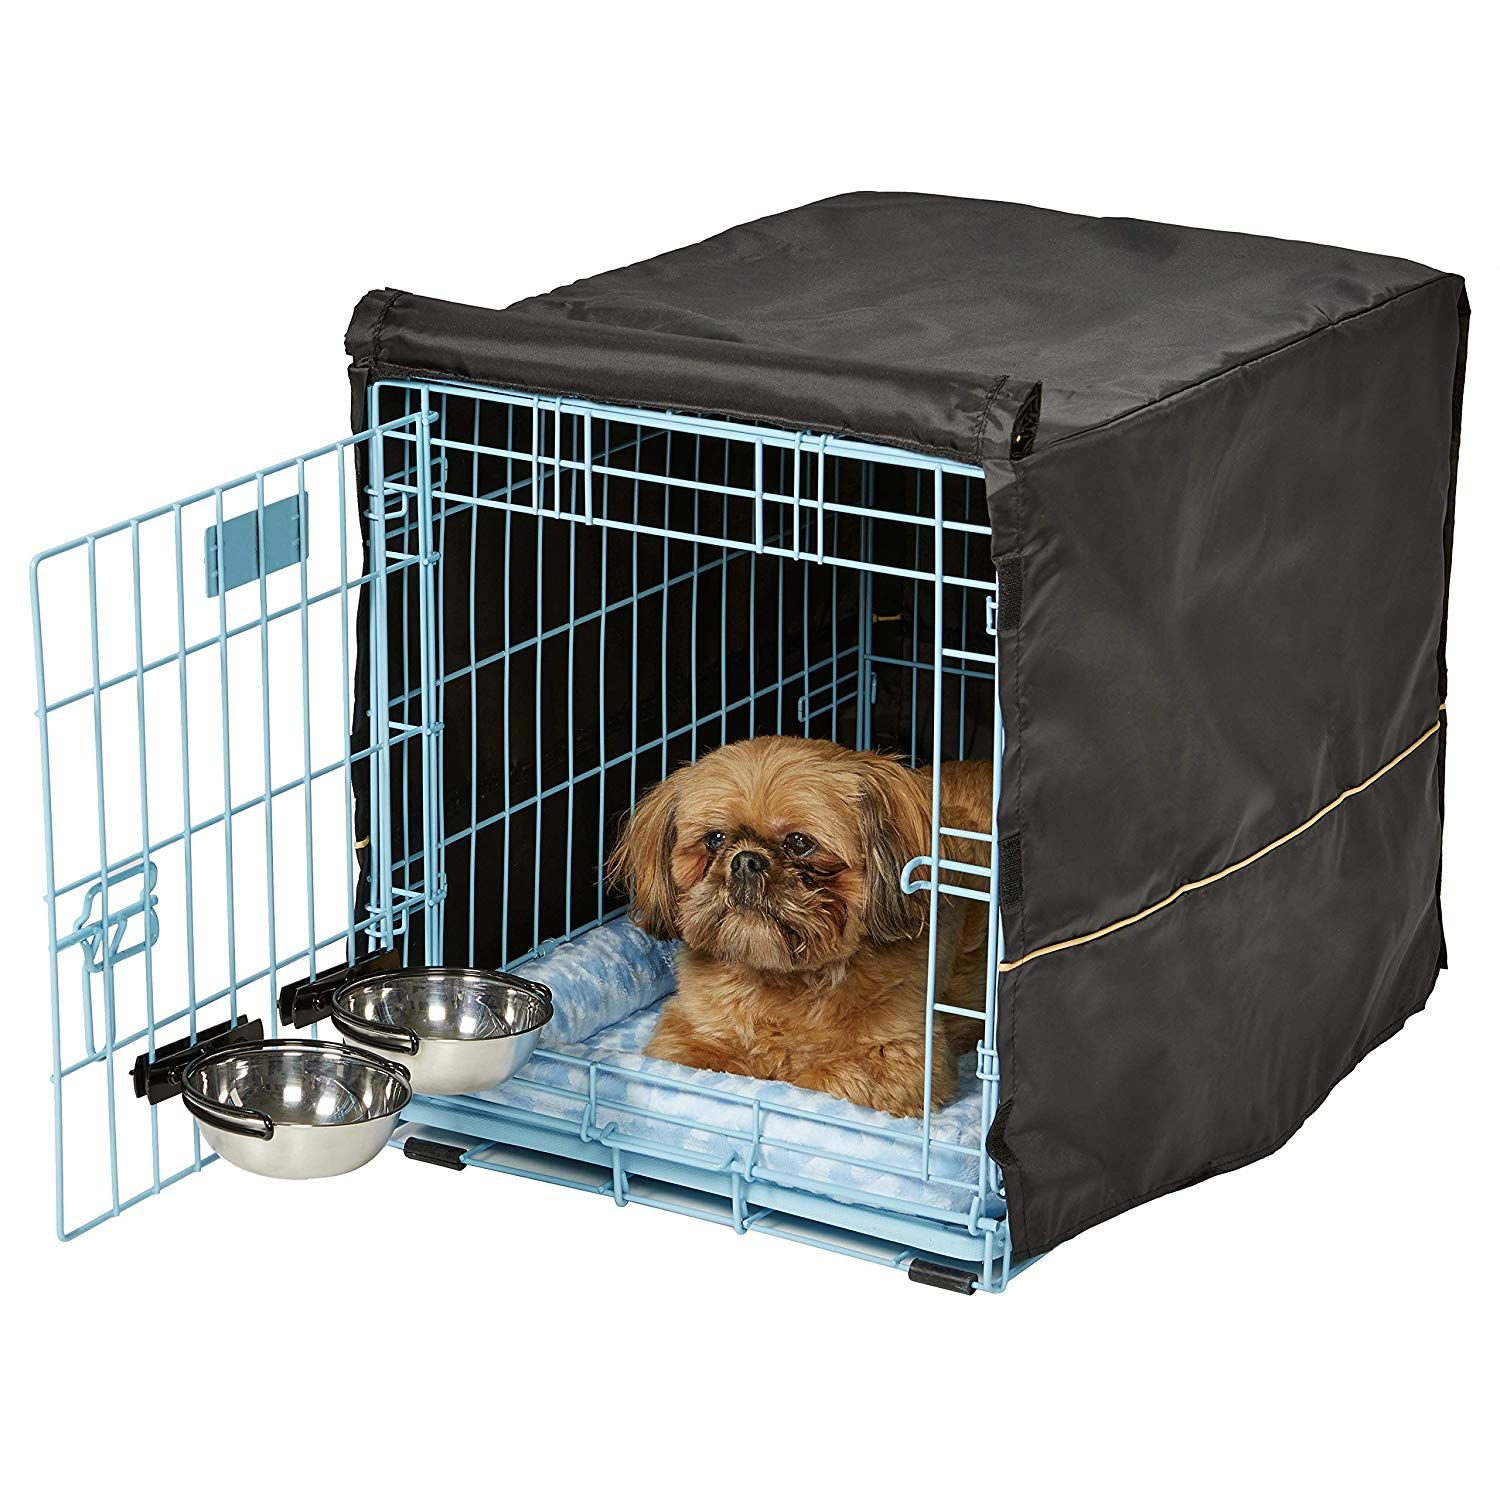 Midwest Icrate Starter Kit The Perfect Kit For Your New Dog Includes A Dog Crate Dog Crate Cover 2 Dog Bowls And Pet Be Dog Crate Basket And Crate